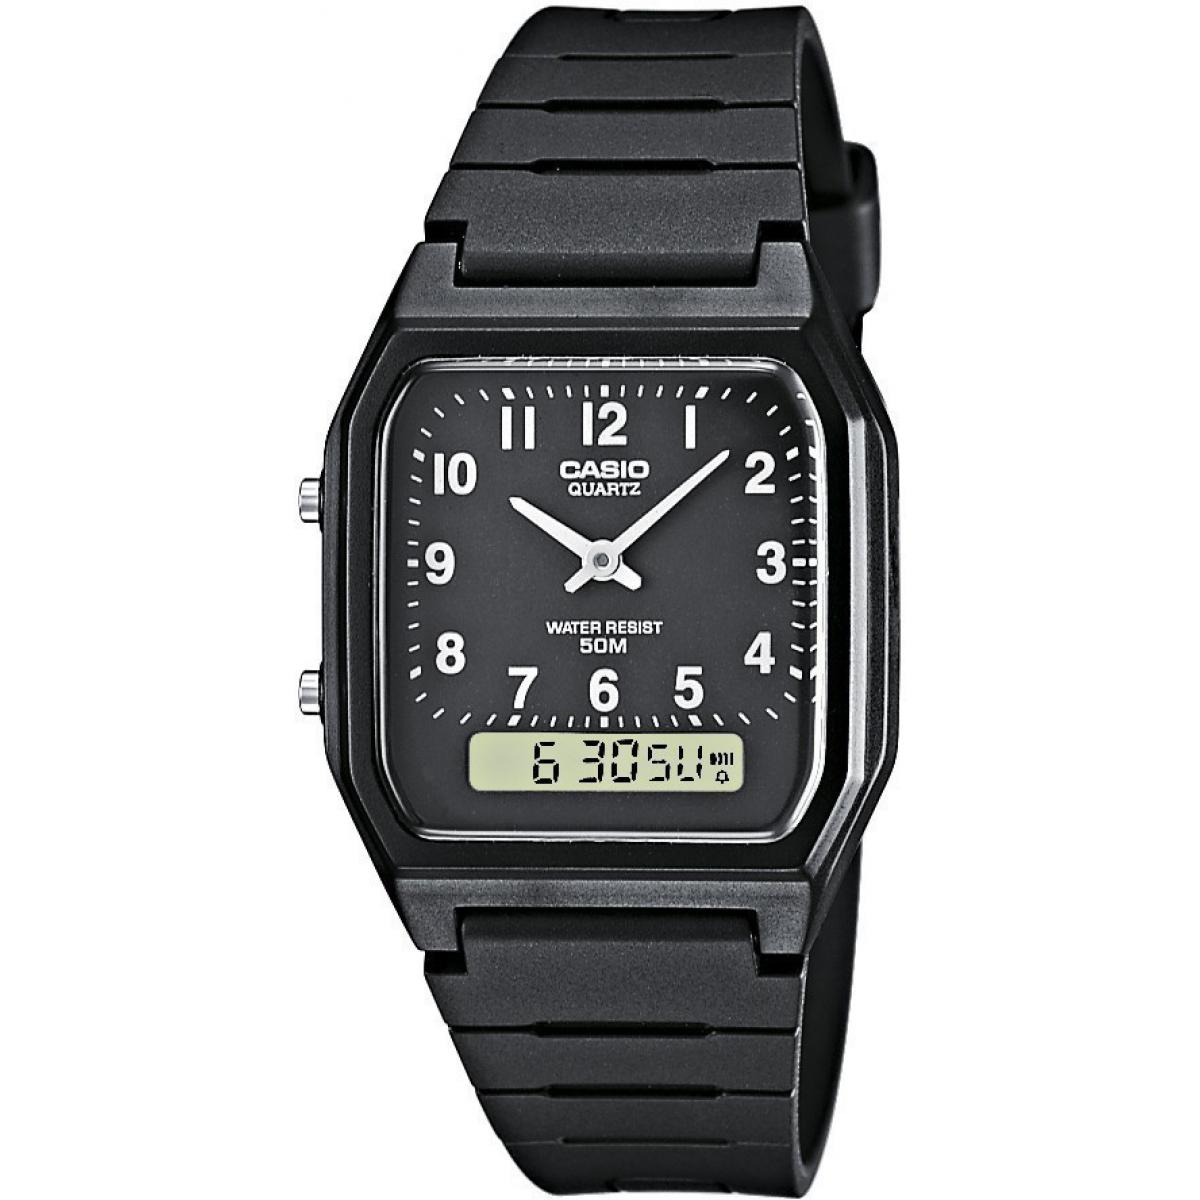 Montre Homme Casio Résine Casio Collection AW-48H-1BVEF